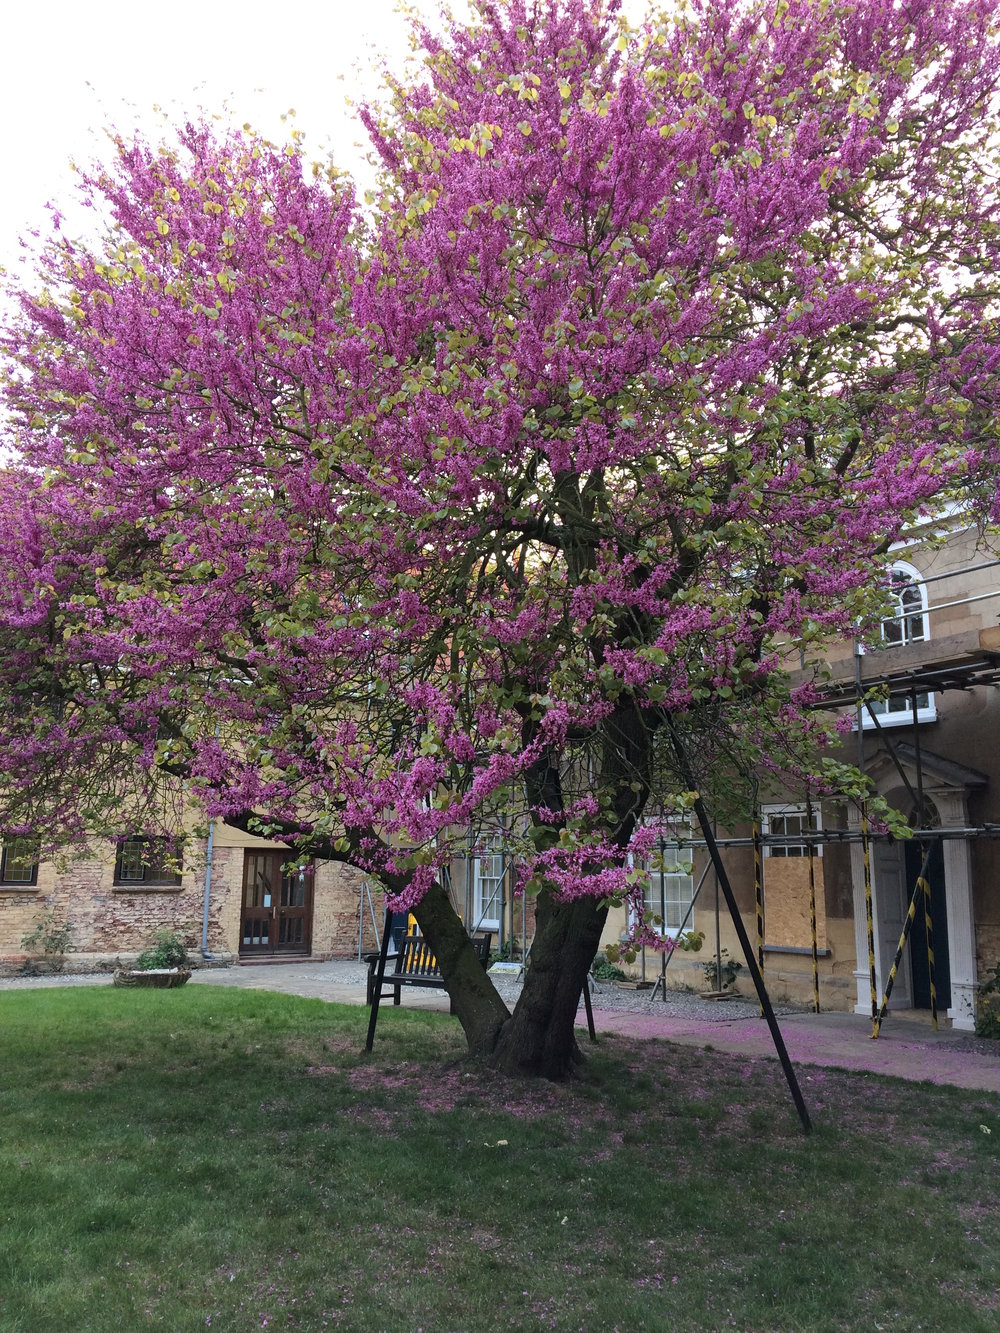 This spectacular Judas Tree fills the courtyard of Thorington College, one of the important historic buildings in King's Lynn, now used for celebrations, courses, meetings and events. The tree rises to the occasion being a landmark in its own right.